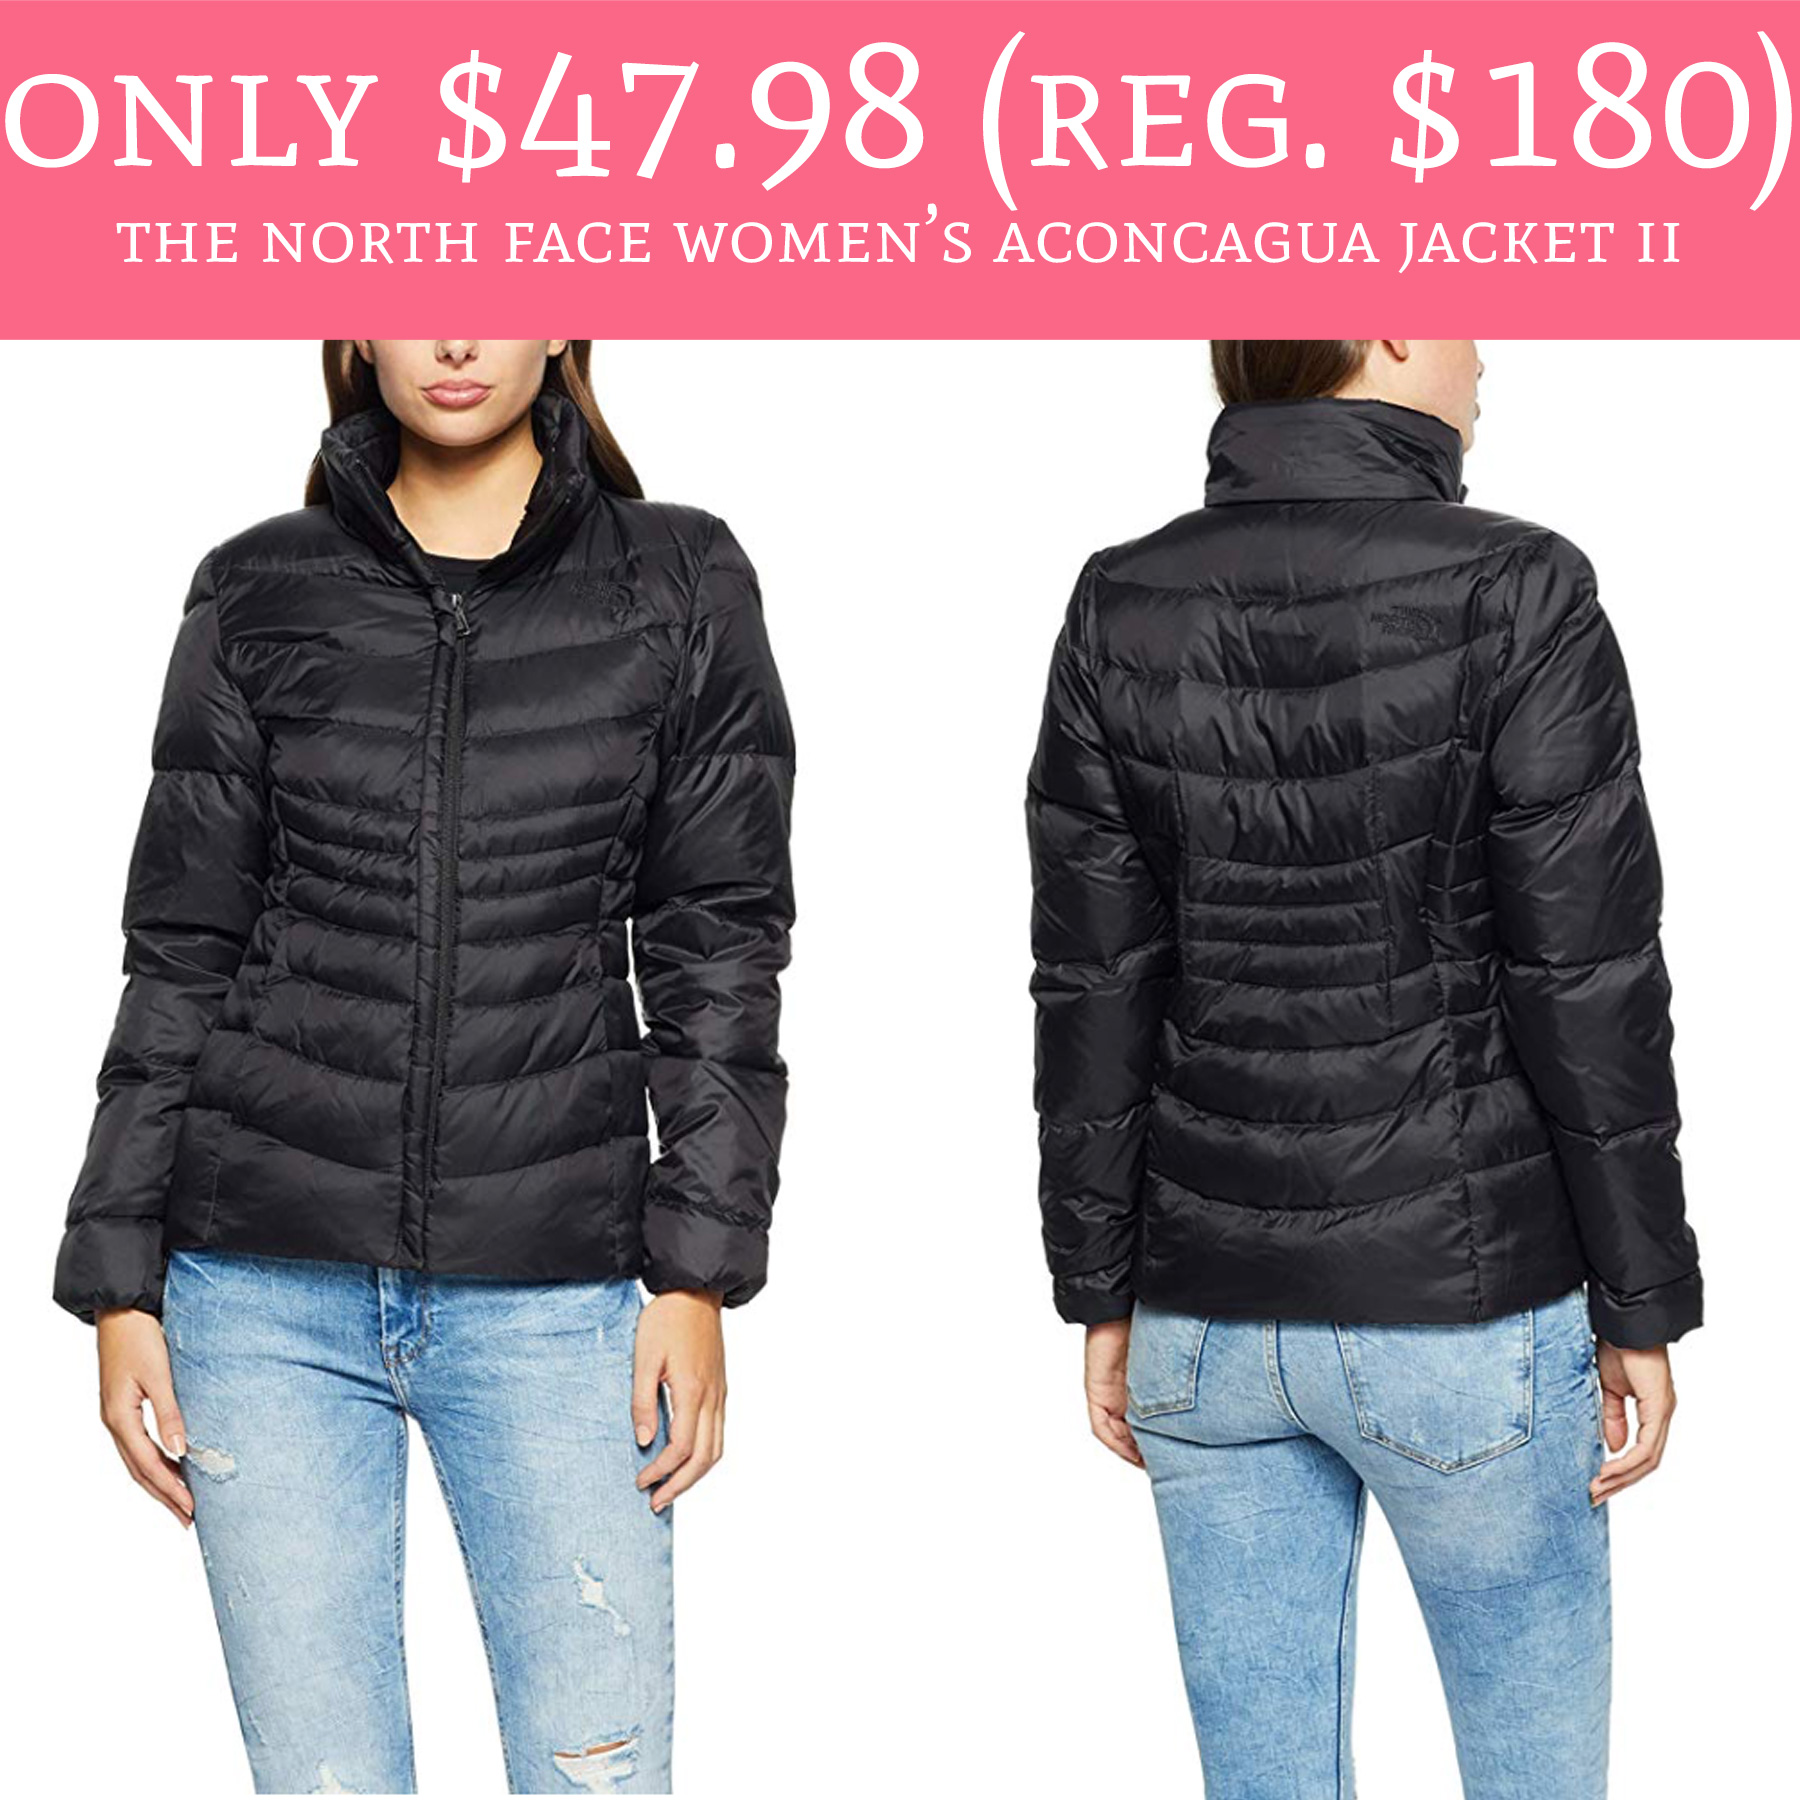 f64d825453878 This deal is HOT! 🔥. Hurry over to Amazon.com where you can score the The  North Face Women s Aconcagua Jacket II ...